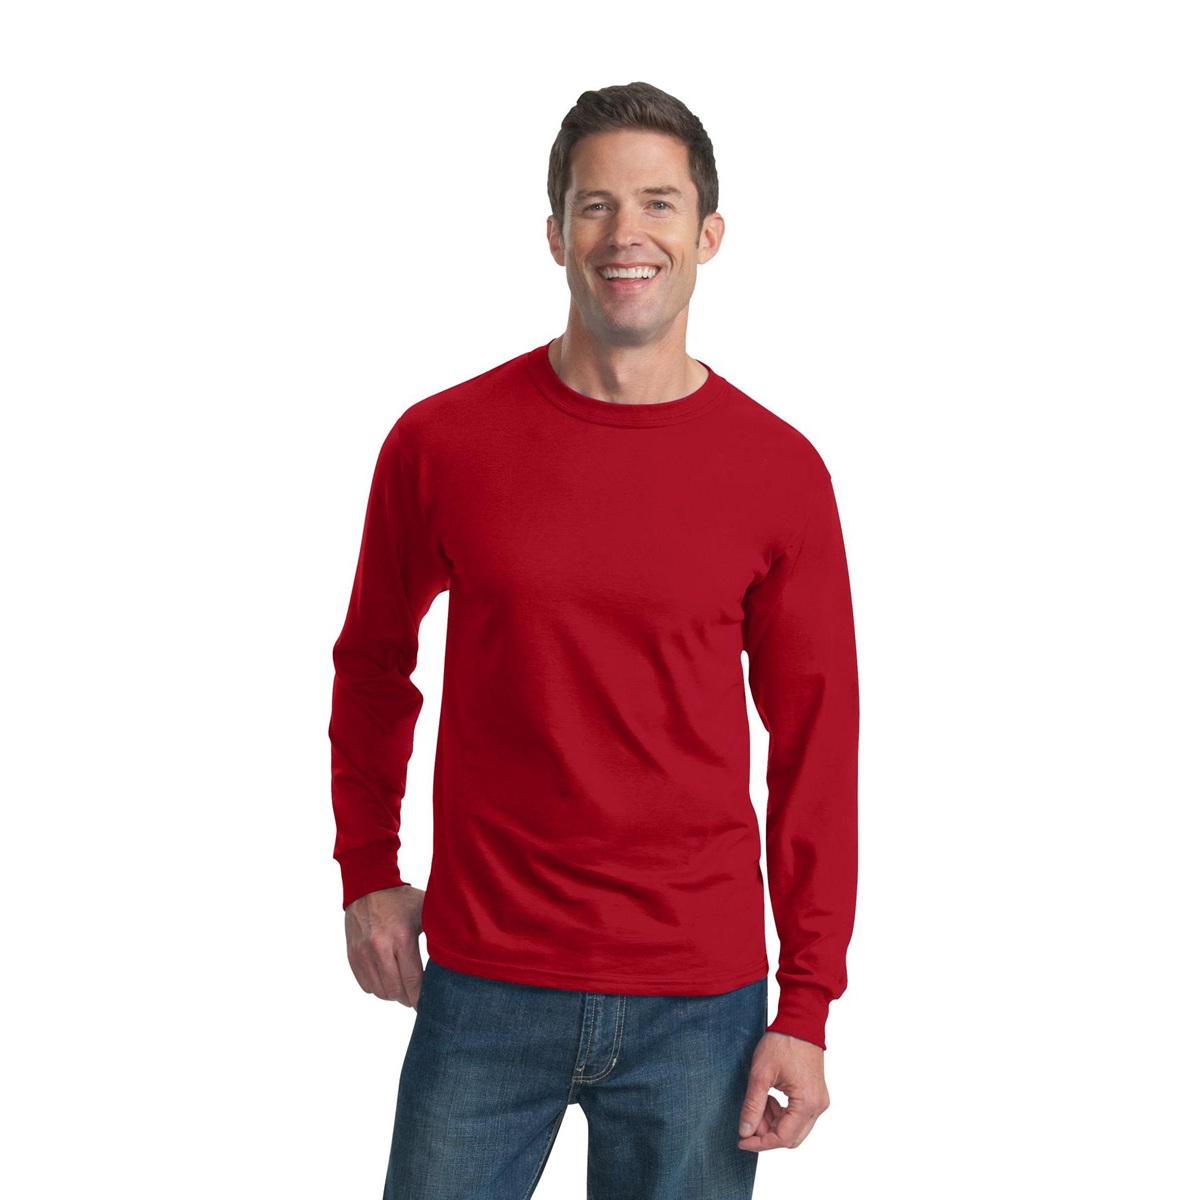 what fruits are healthy fruit of the loom long sleeve